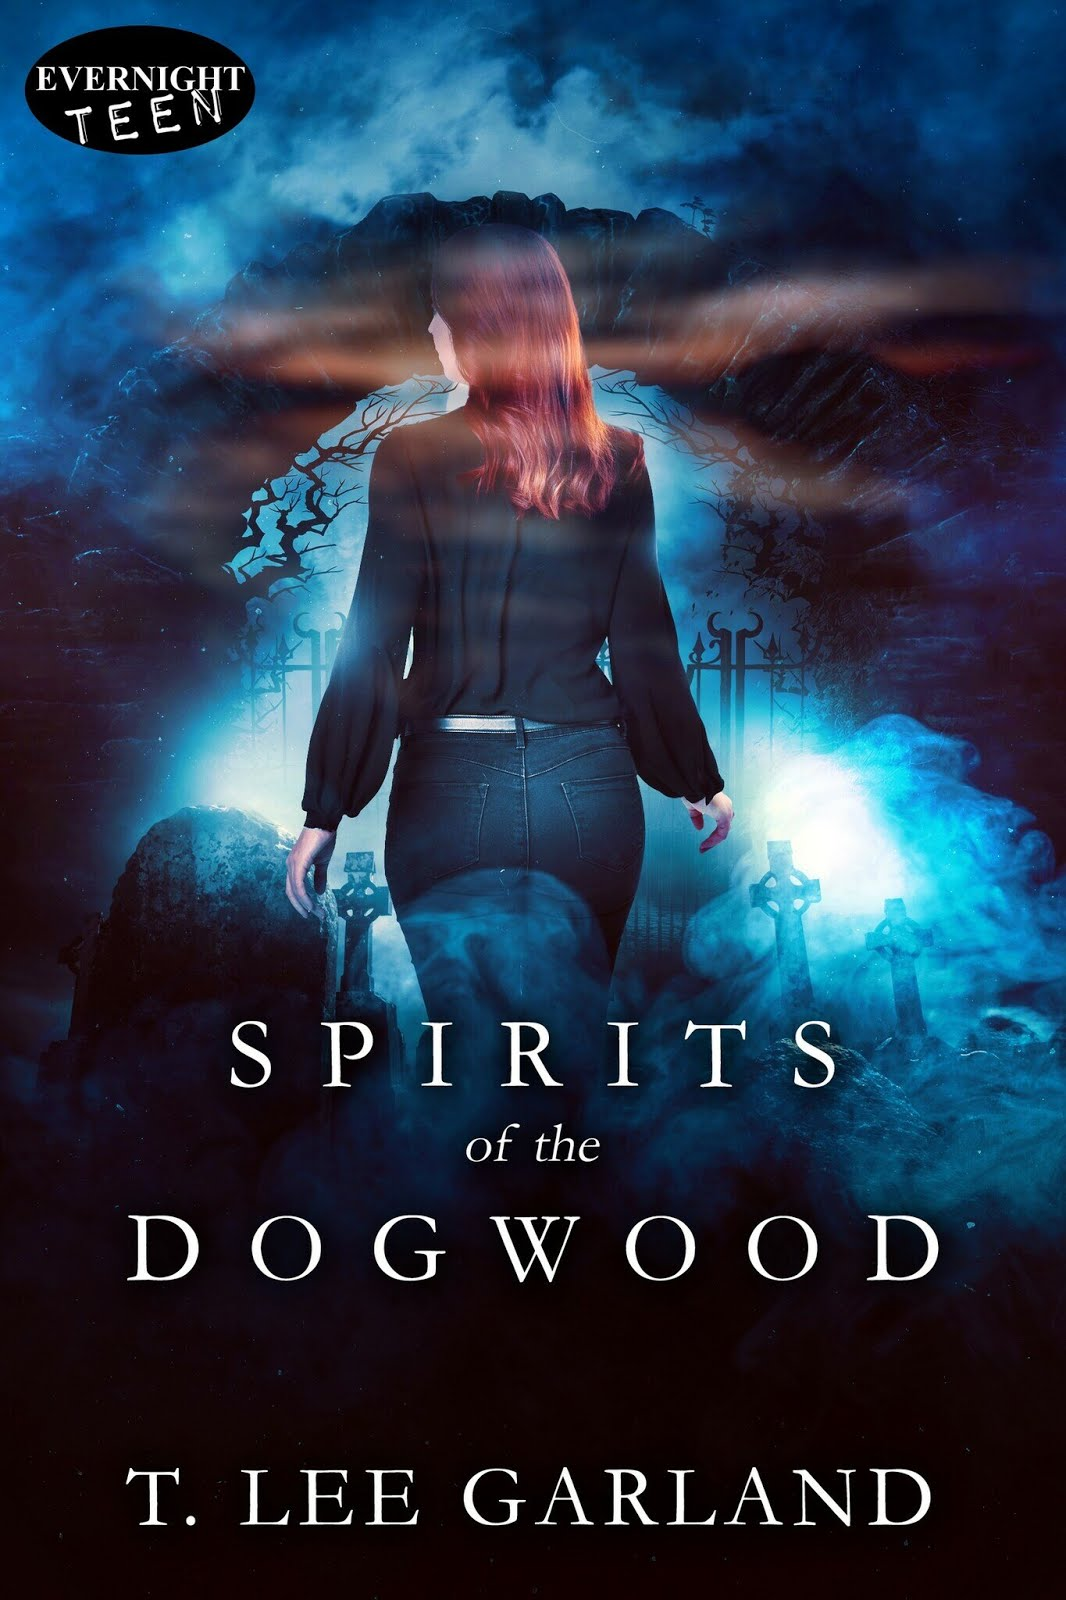 Spirits of the Dogwood